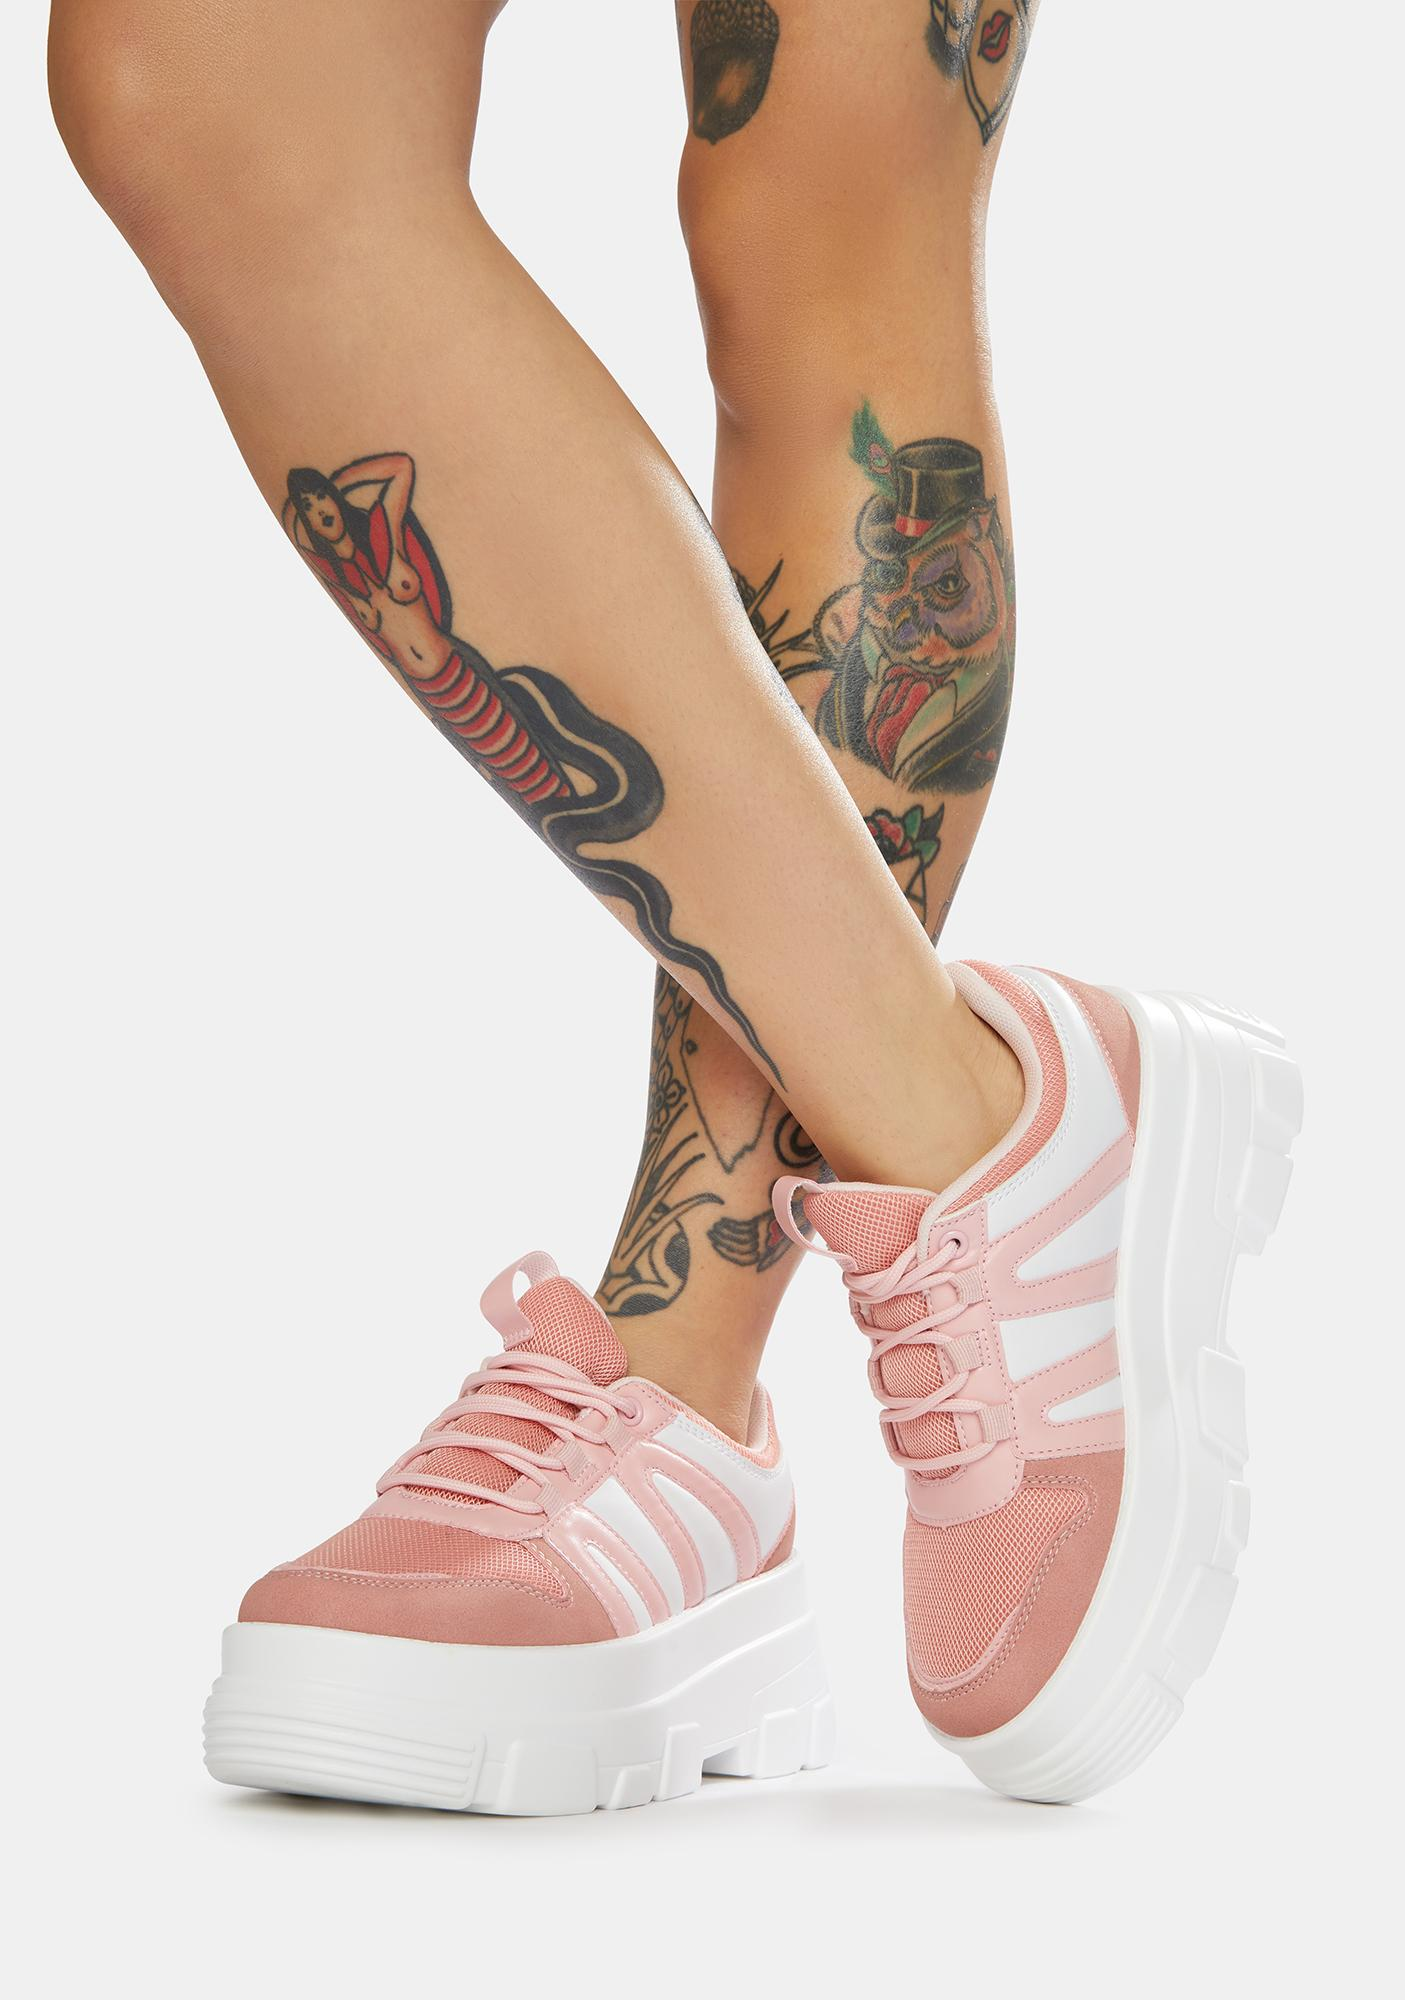 Baby If You Don't Know Platform Sneakers